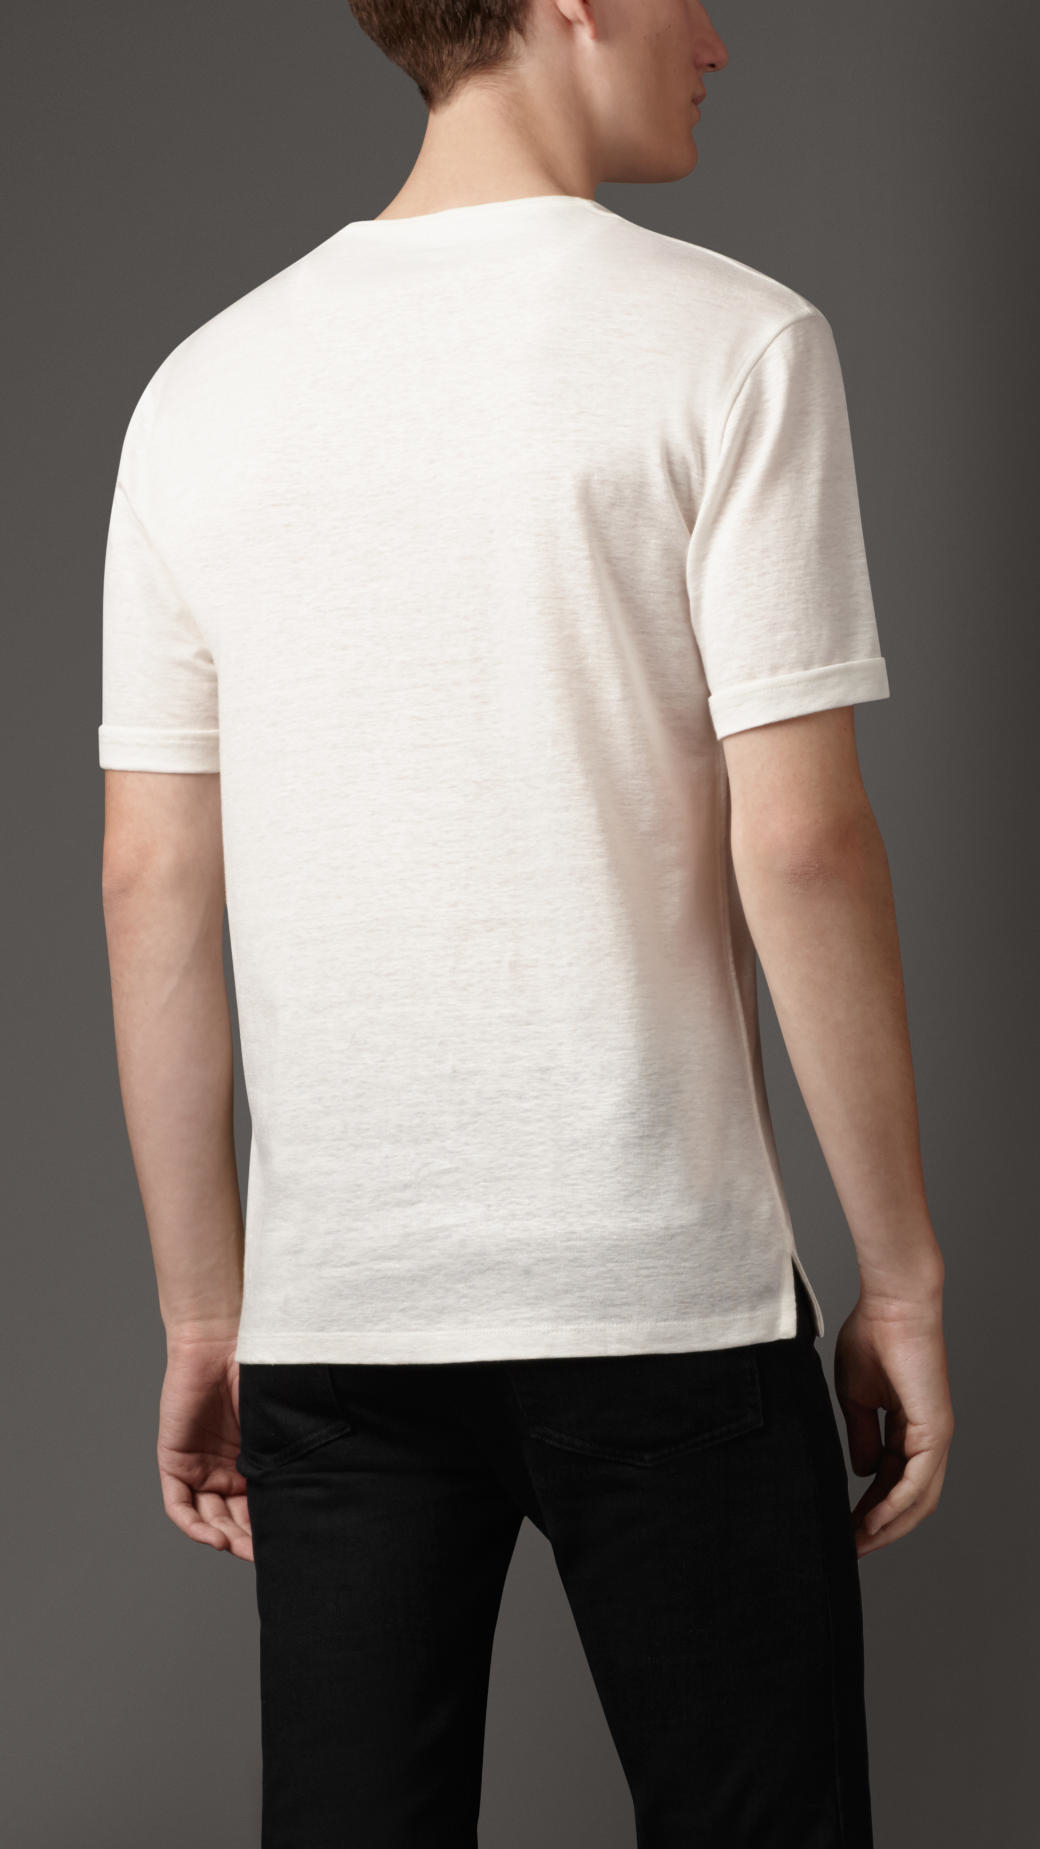 lyst burberry linen and cotton t shirt in white for men. Black Bedroom Furniture Sets. Home Design Ideas